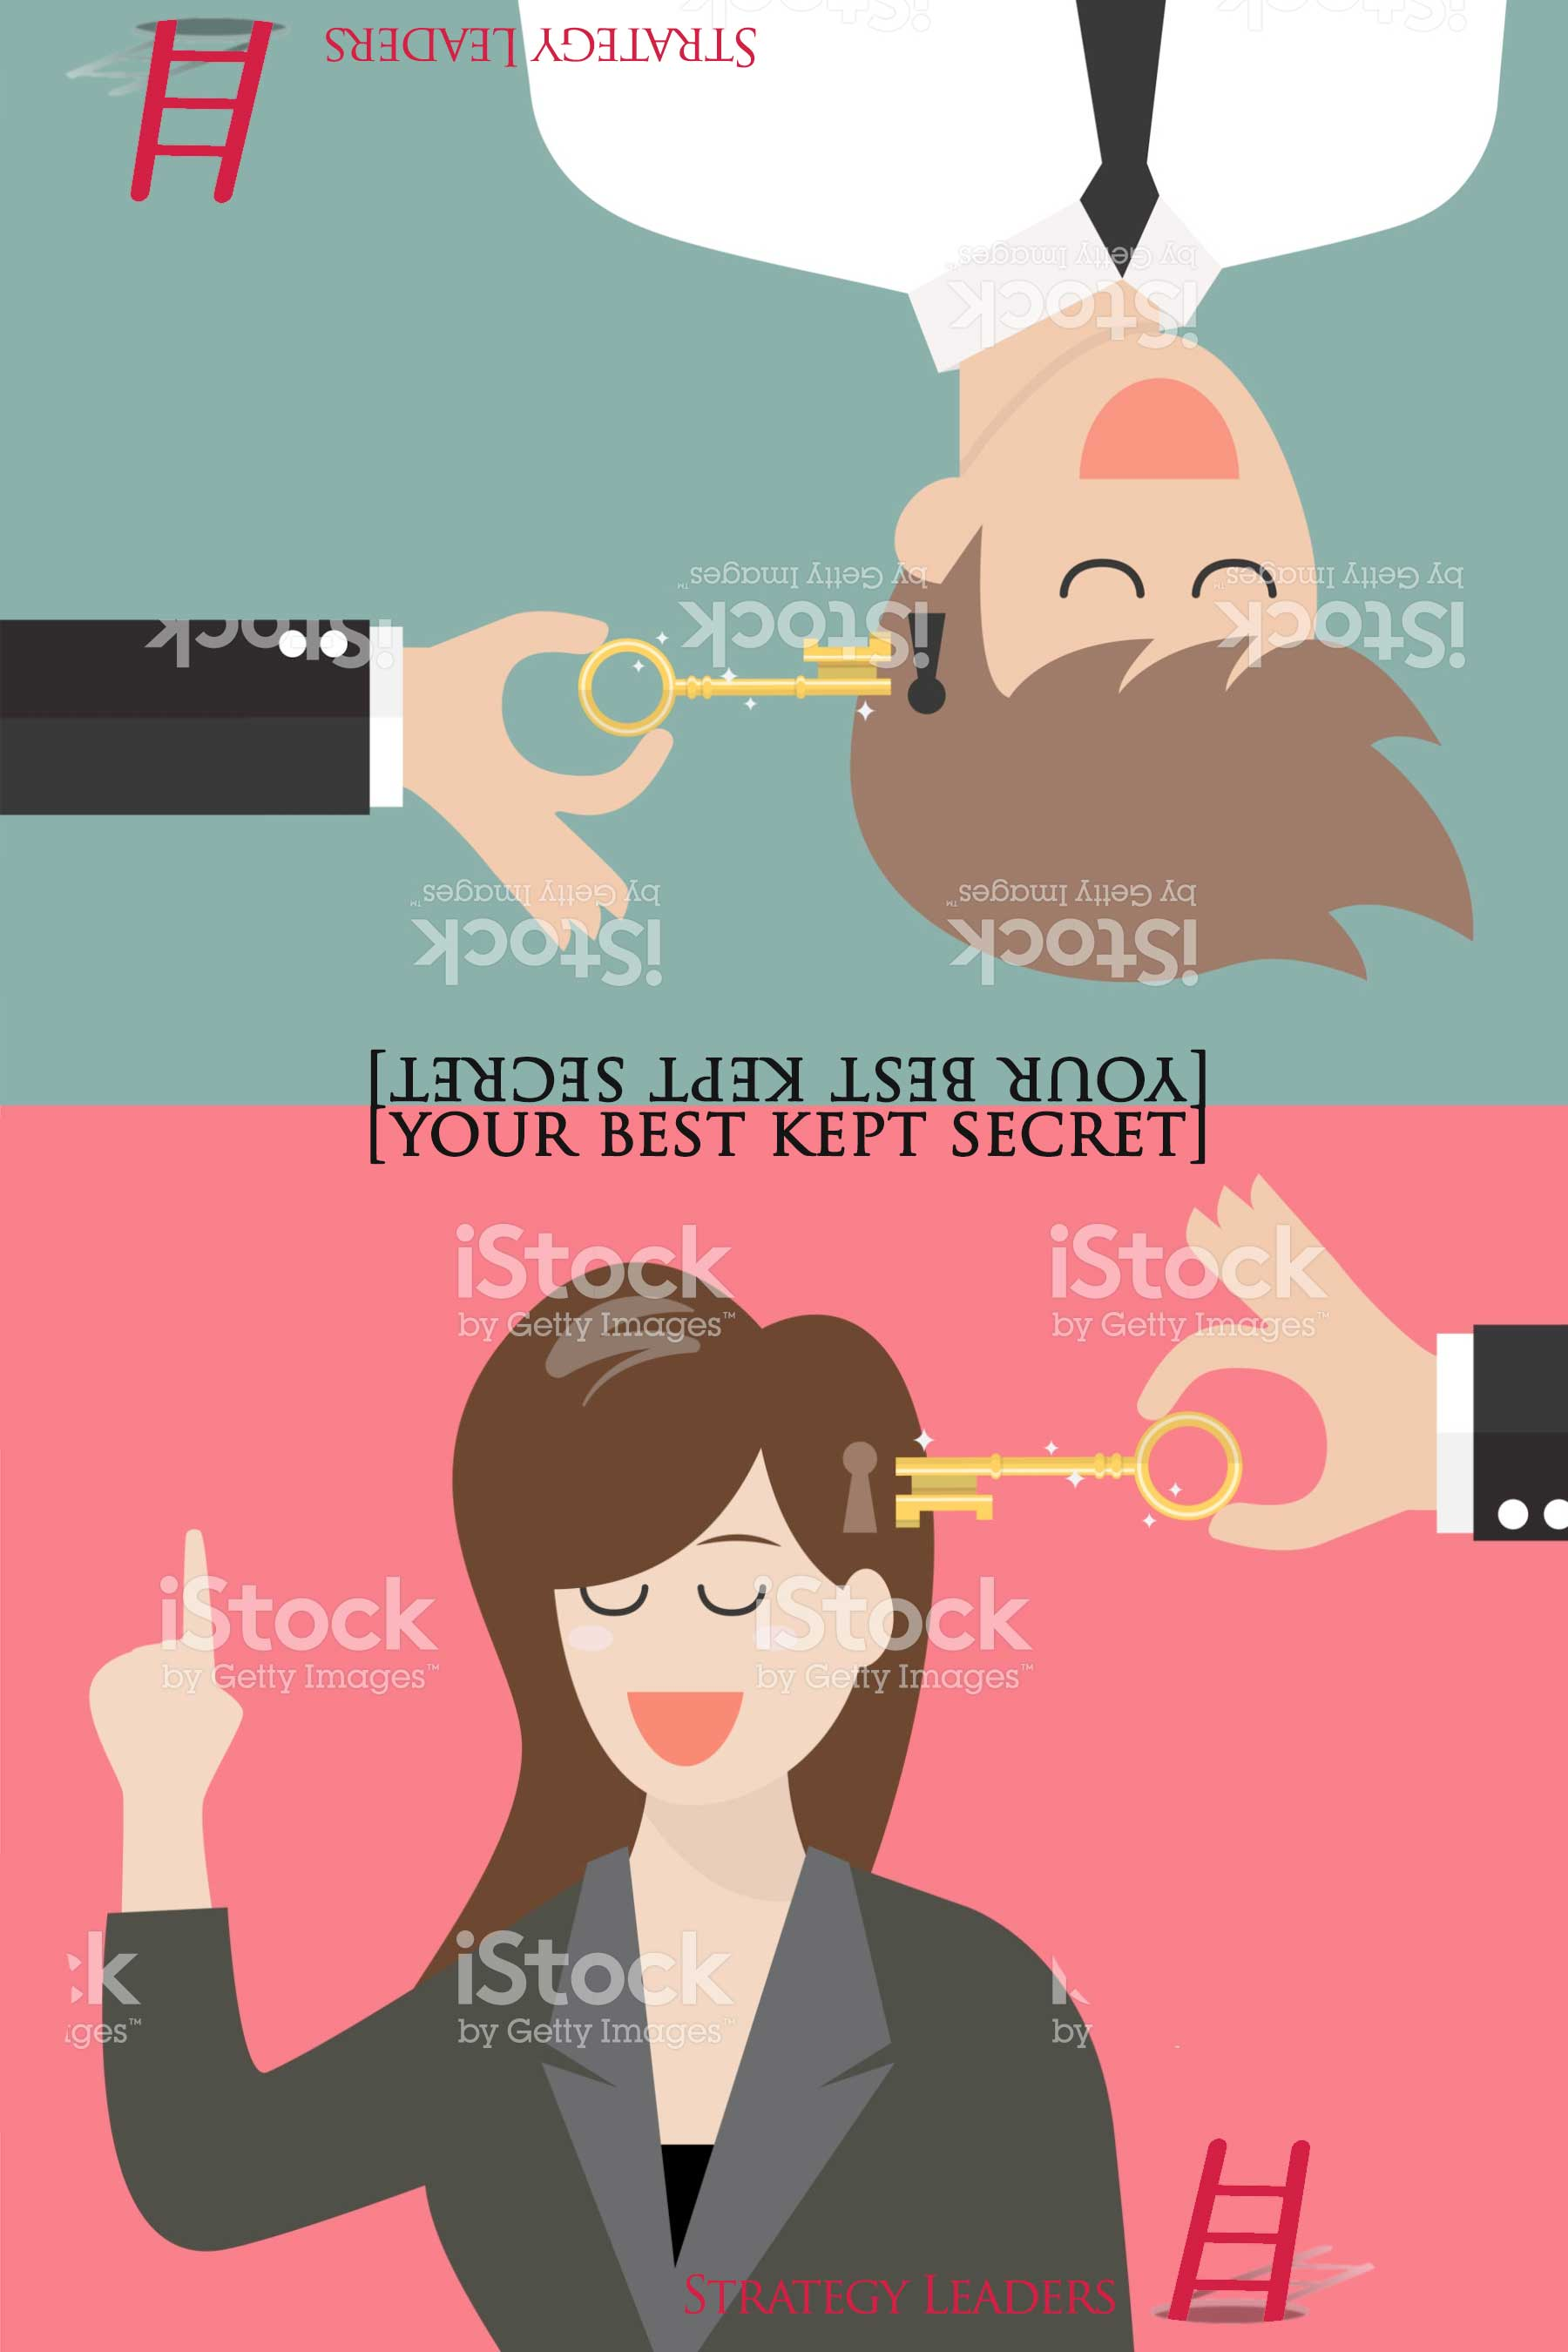 ad-best-kept-secret-key-illustration